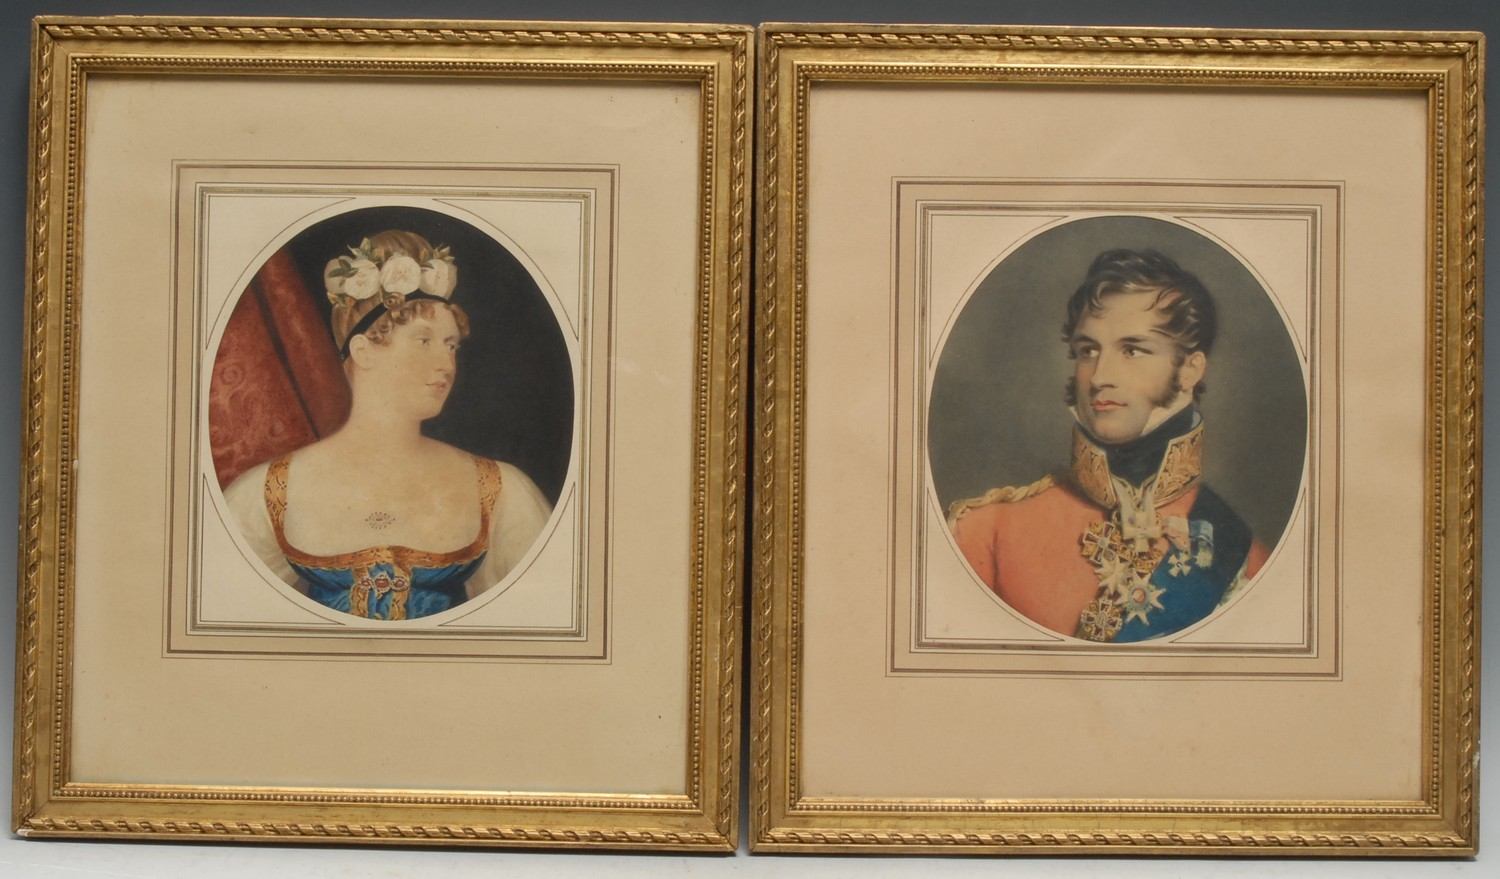 European Royalty - After George Dawe RA (1781-1829), a pair of portraits, Prince Leopold of Saxe-